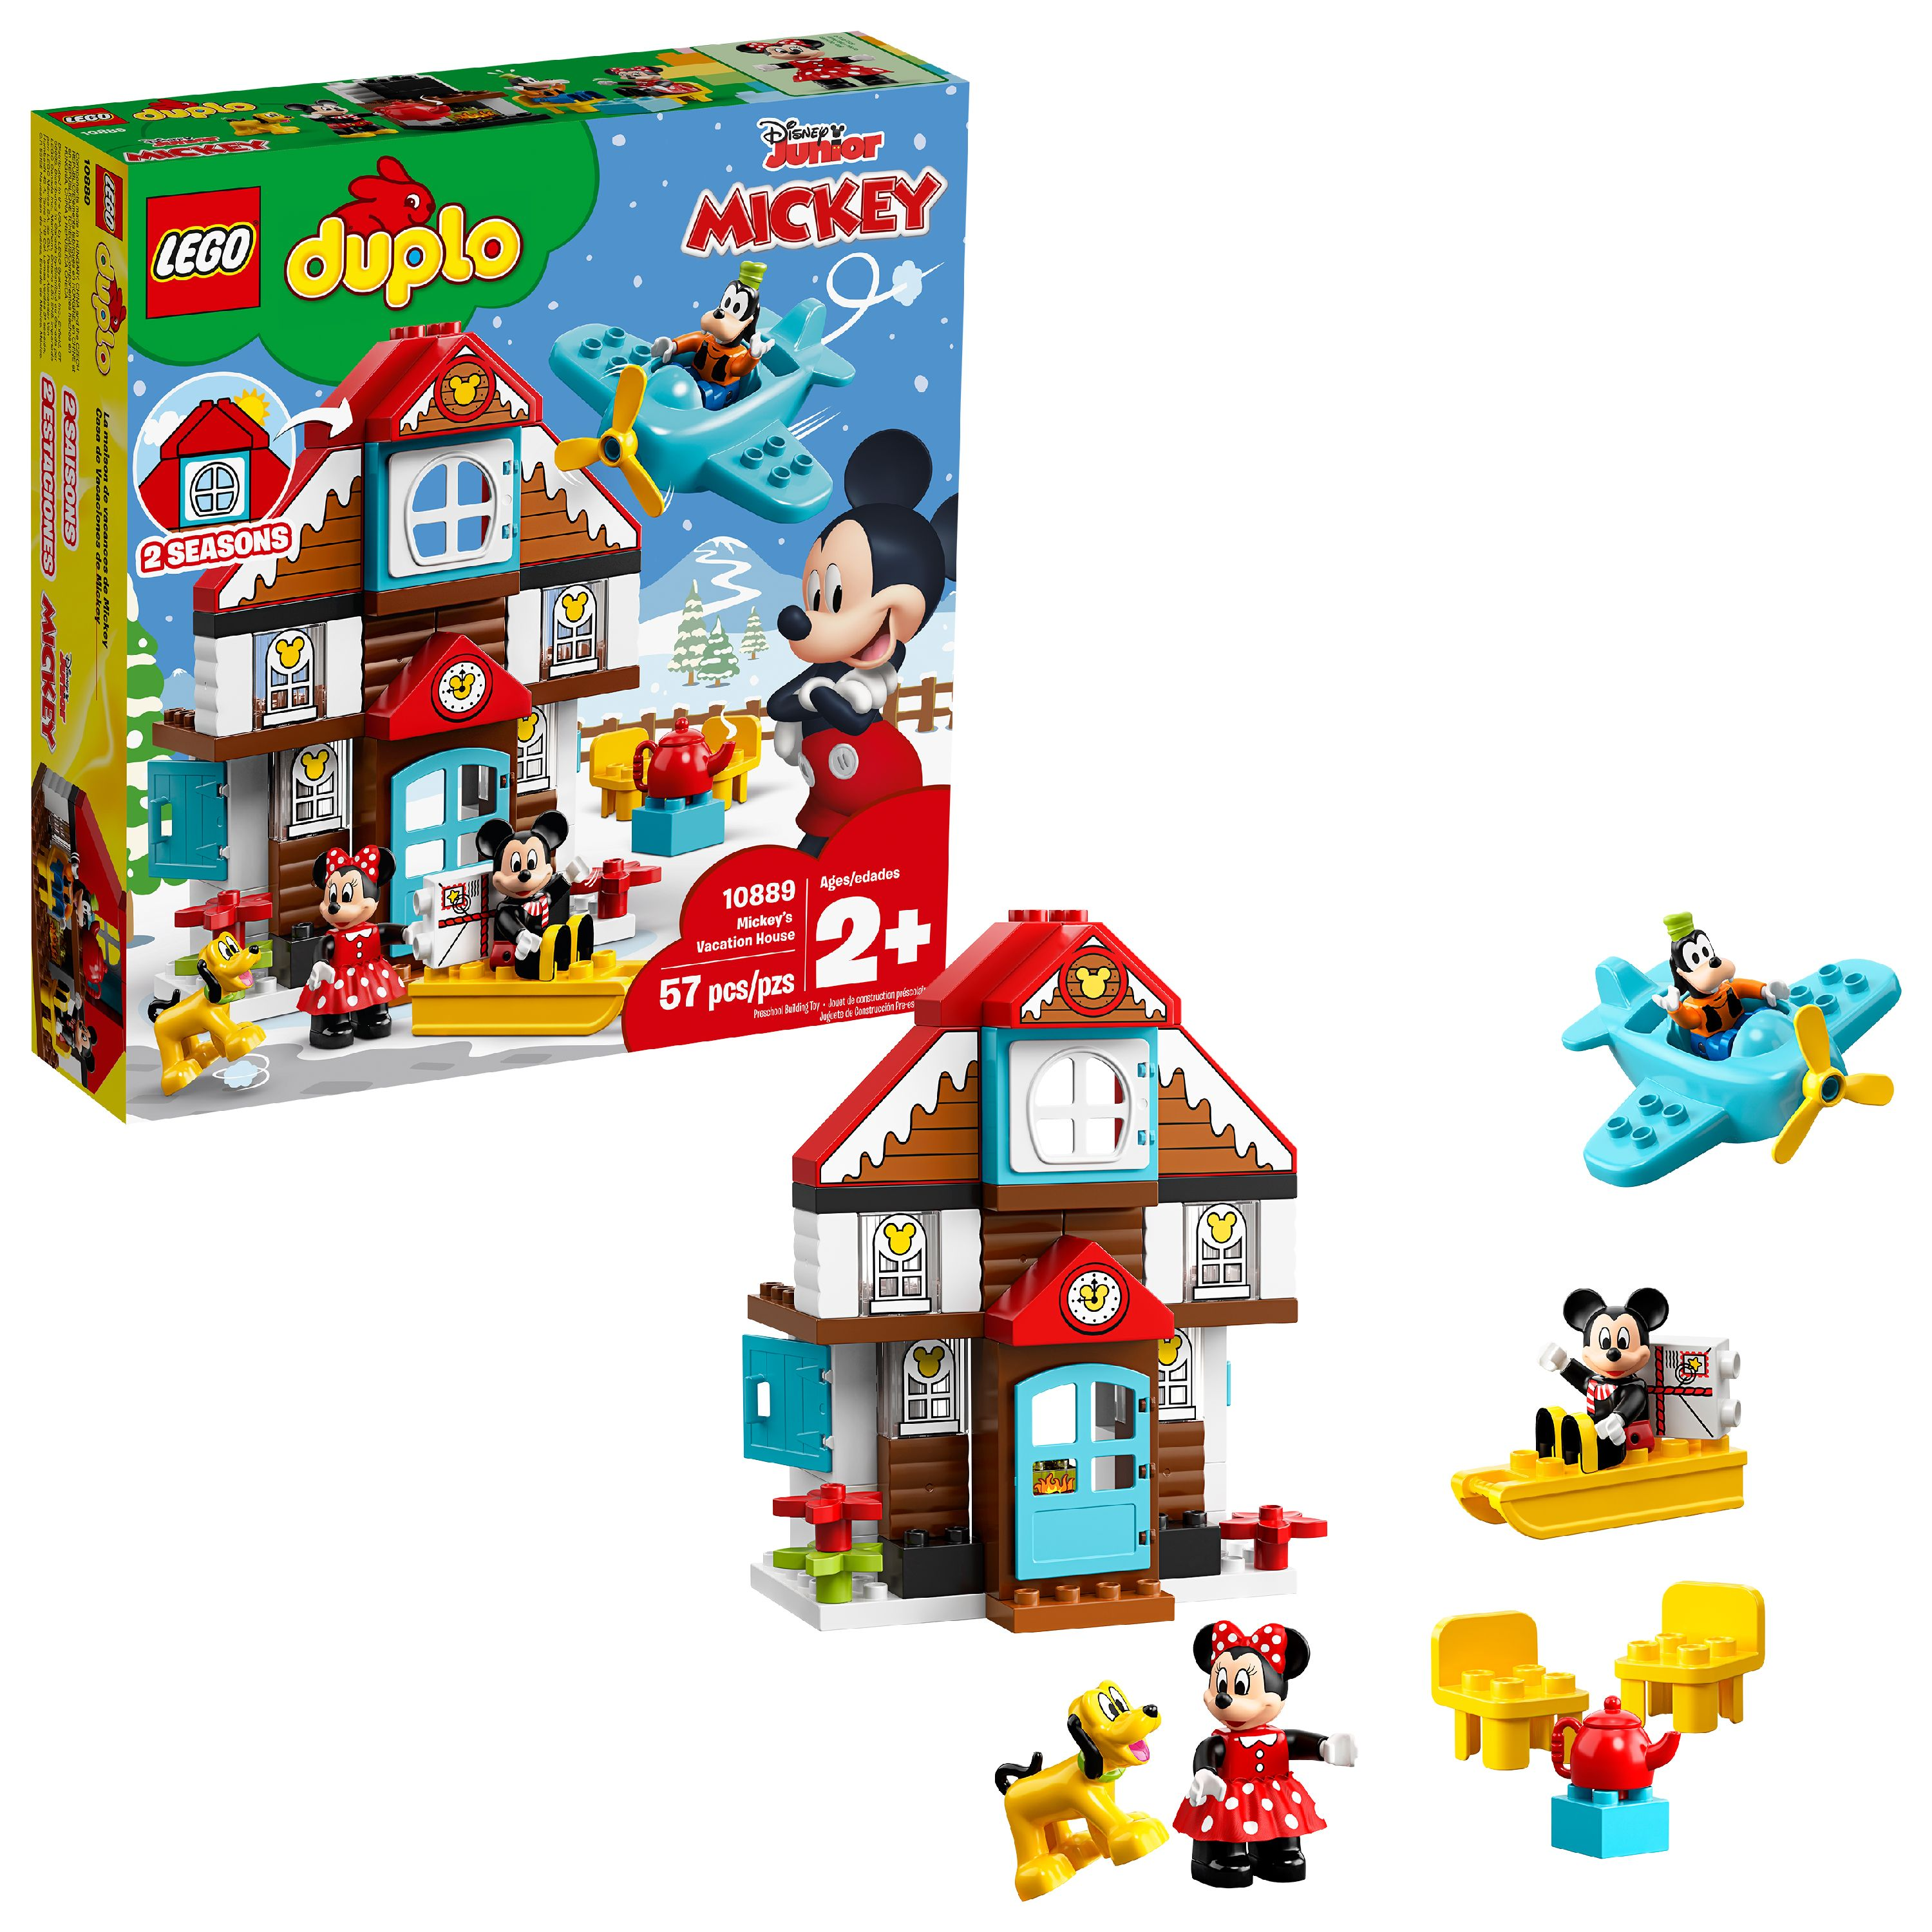 La Maison Du Convertible Republique lego duplo disney mickey's vacation house 10889 toddler building set -  walmart